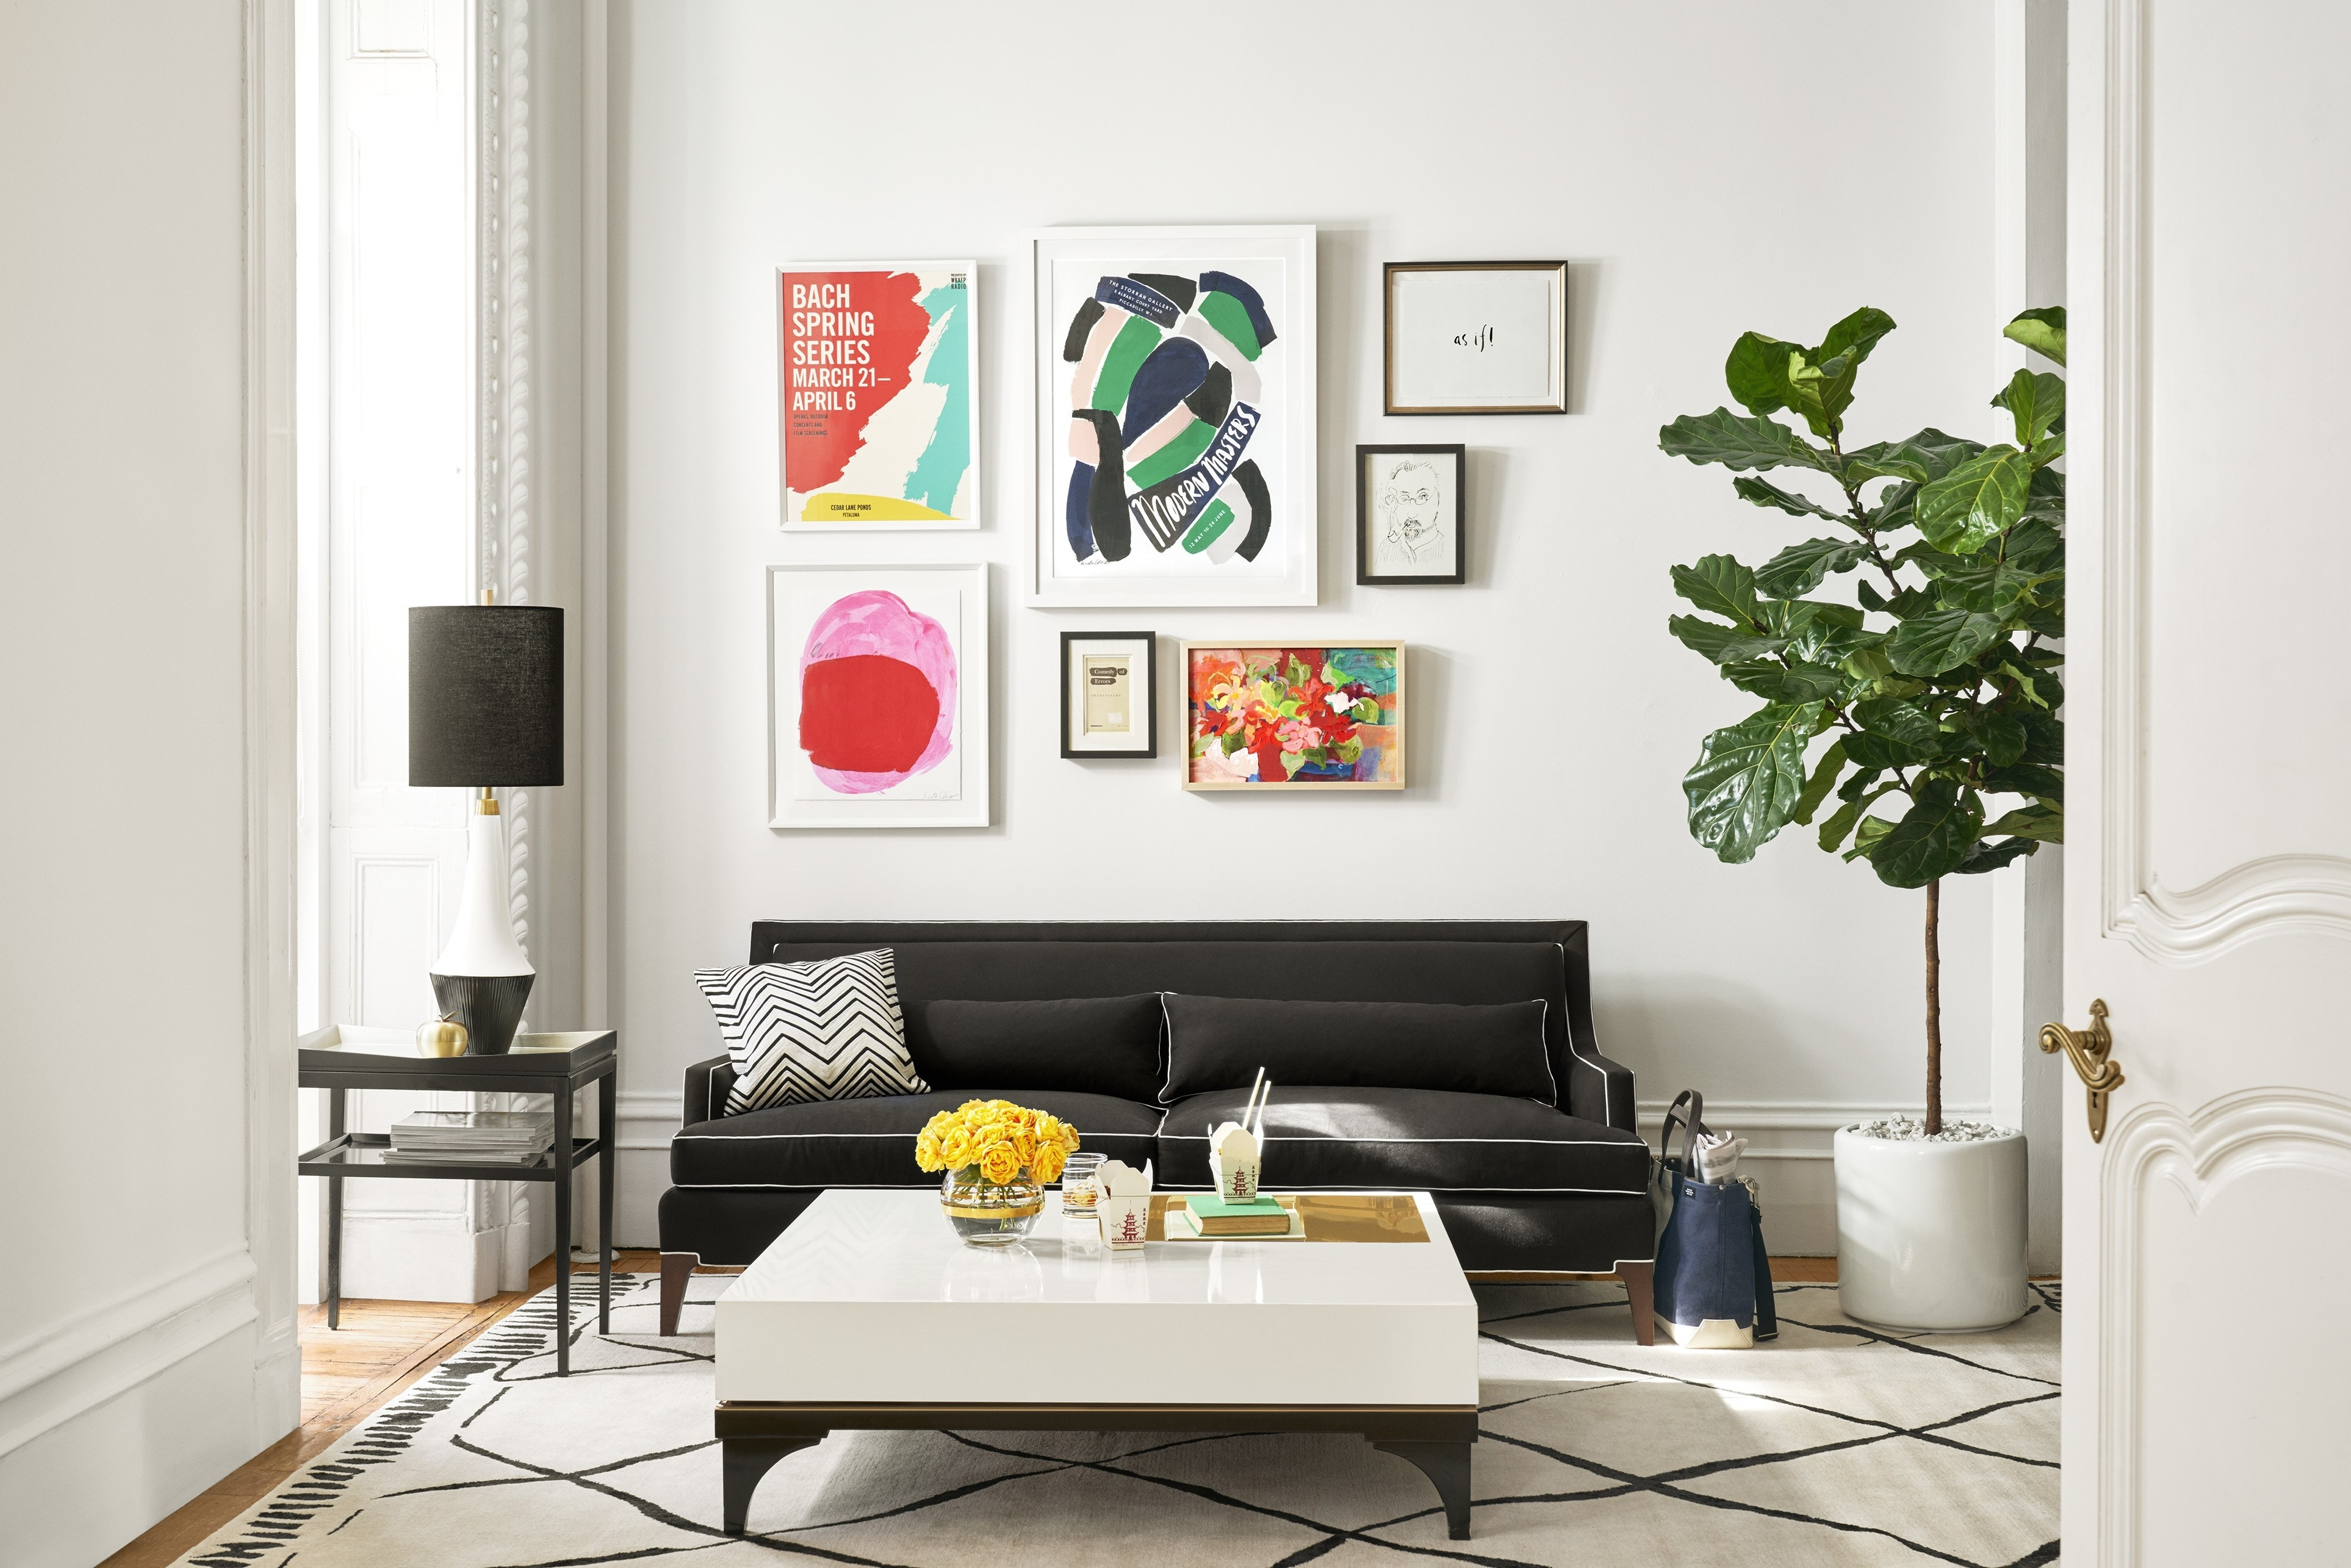 How To Choose The Right Art For A Gallery Wall | Architectural Digest With Most Recently Released Kate Spade Wall Art (View 5 of 20)